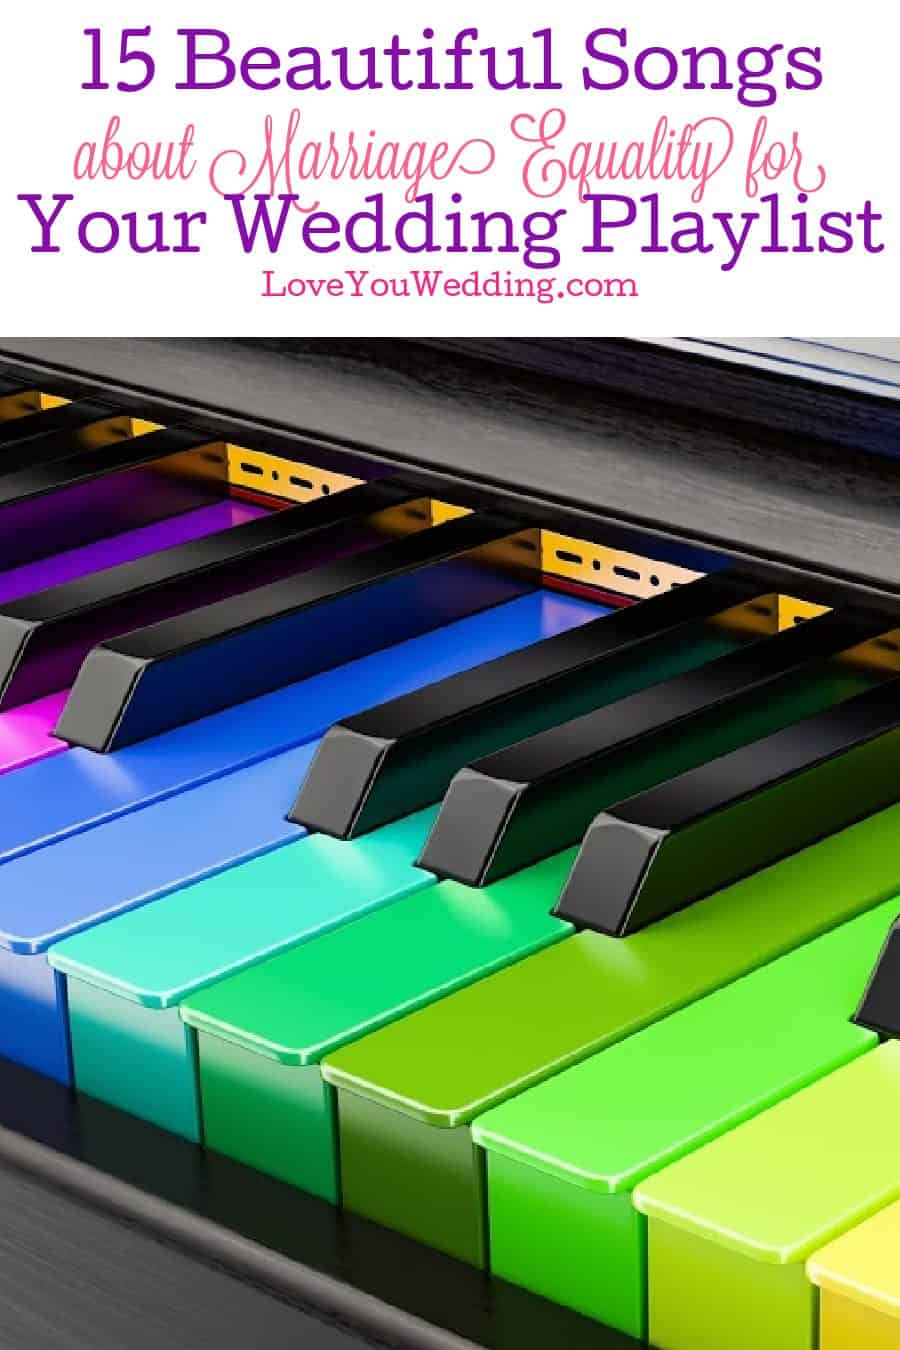 If you're looking for the most perfect songs about marriage quality, then this is where you should be! Check out 15 that are perfect for your wedding playlist!